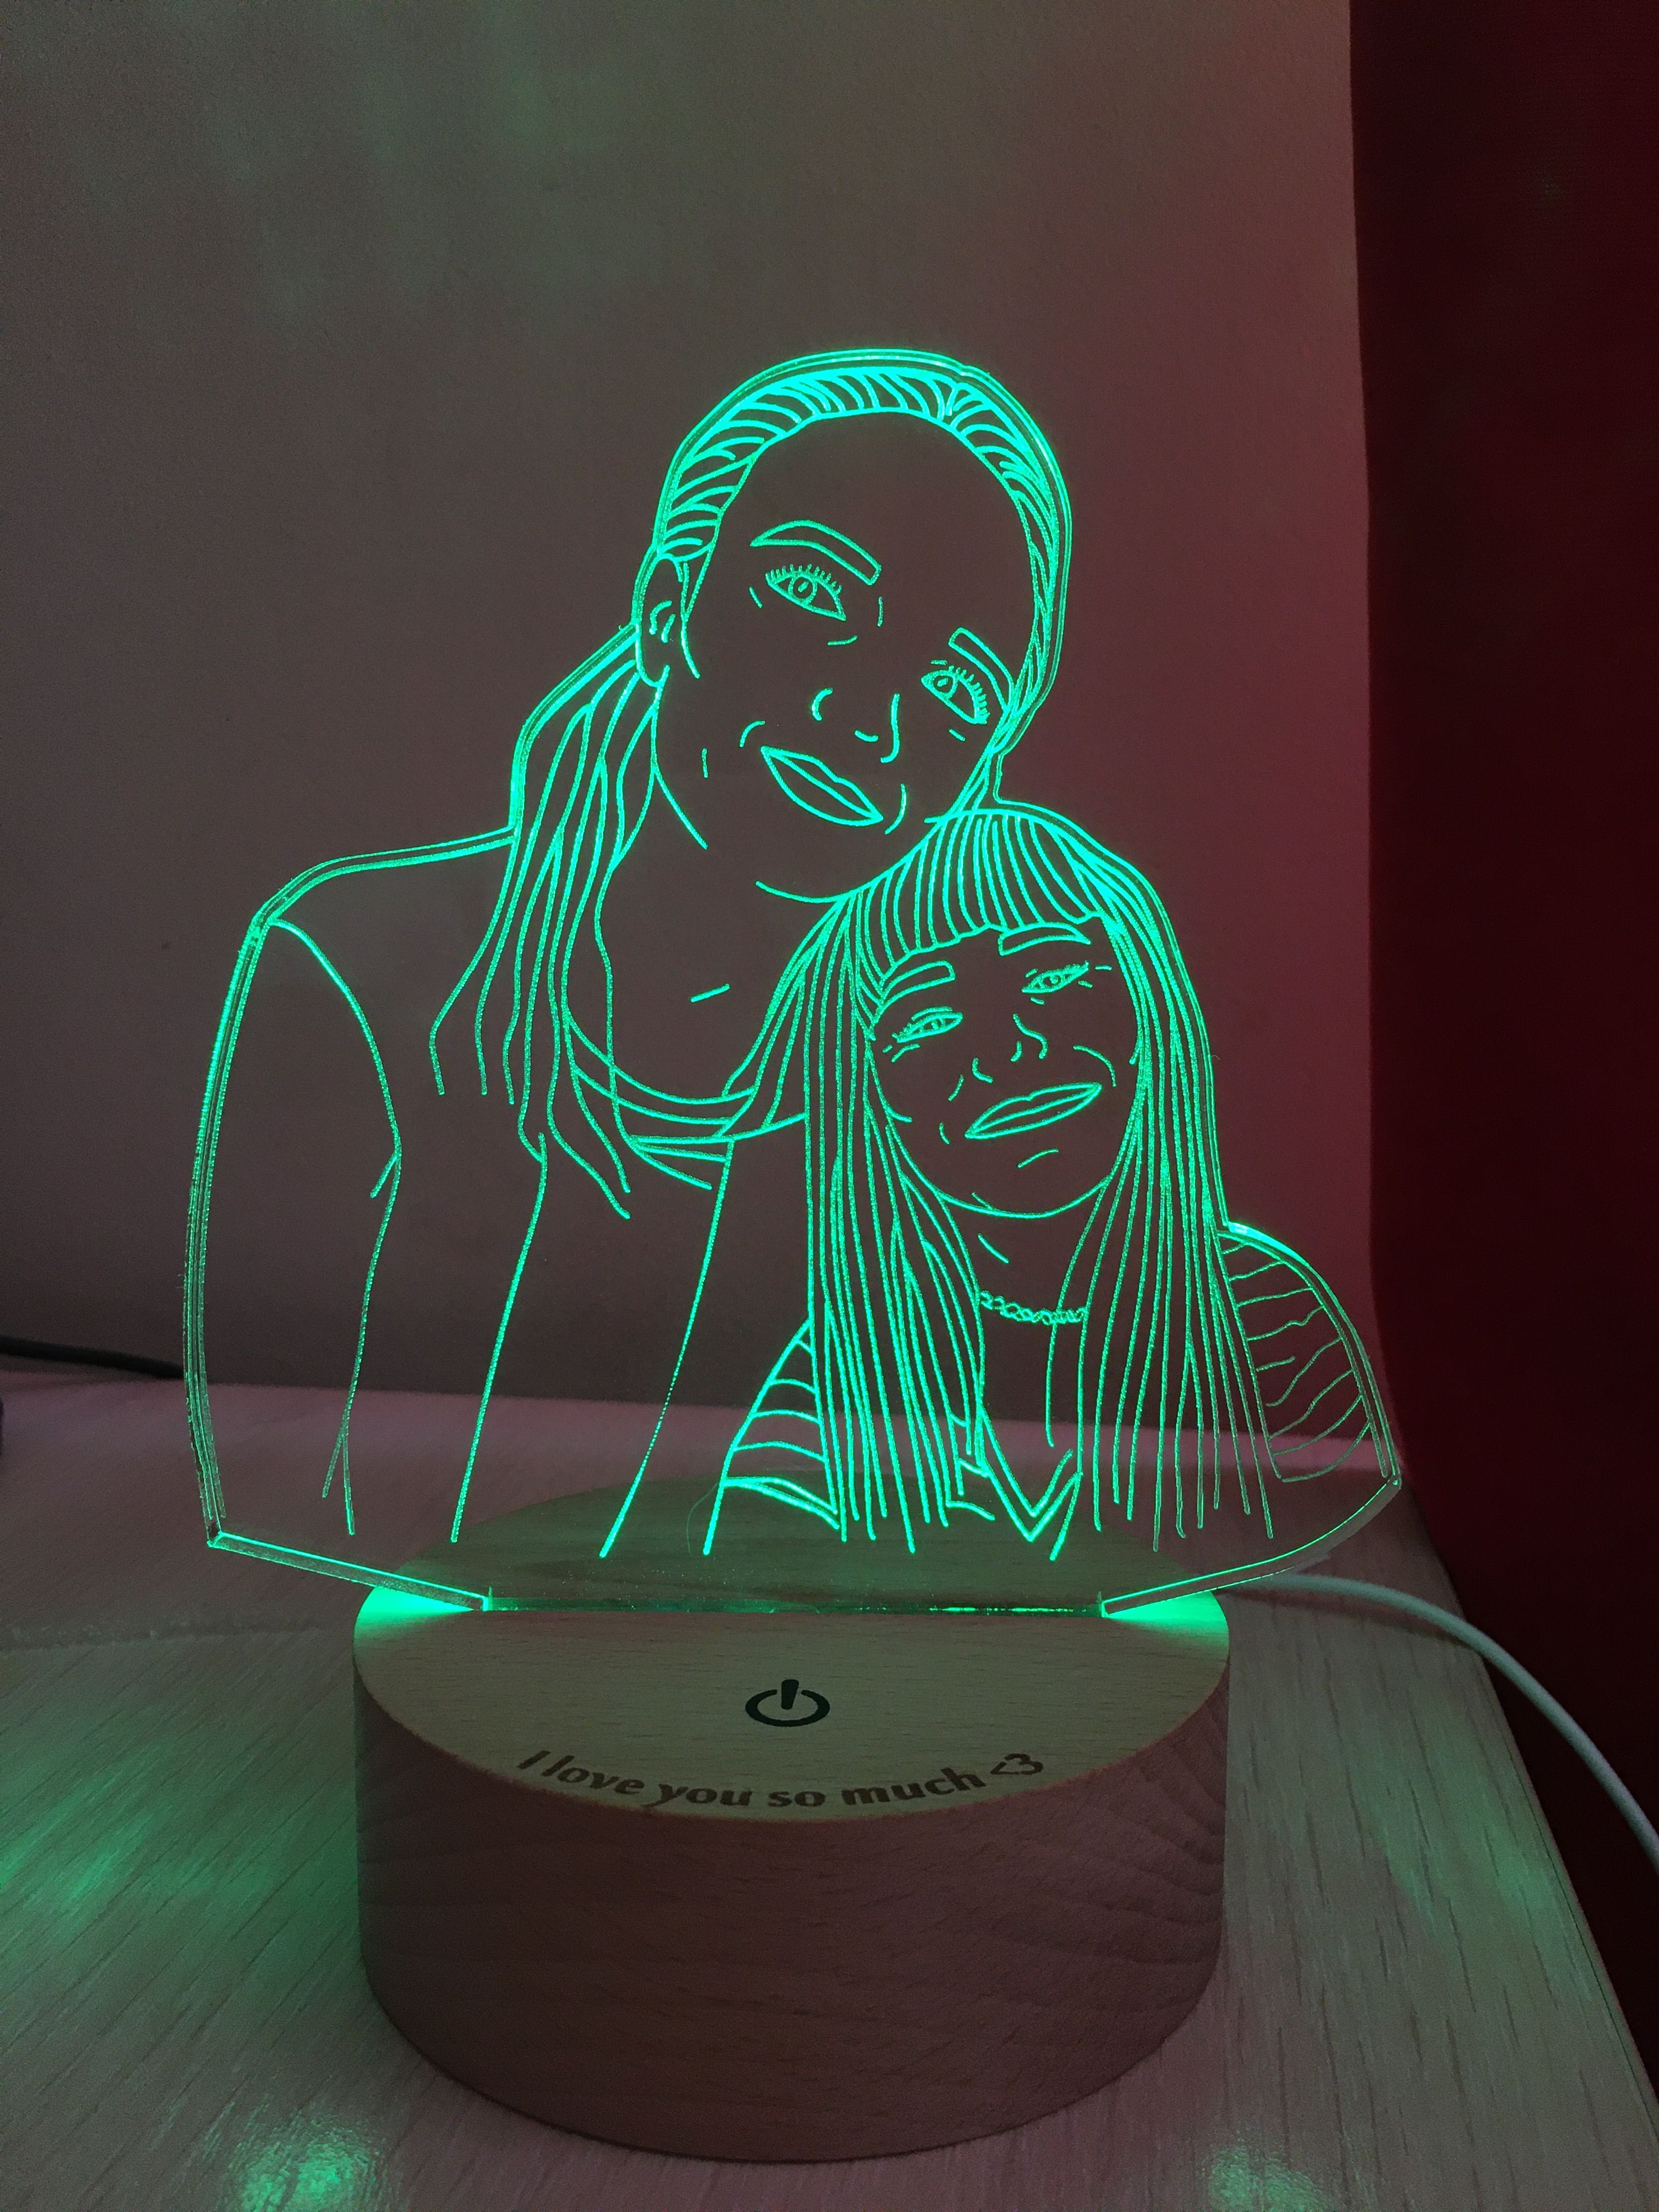 Custom Photo Desk Led Lamp Drawing From Photo 5th Anniversary Gift Nightlight Led Dimmable Touch Remote Switch Nightlight Led Lamp In 2020 Lamp 3d Led Lamp Photo Lamp